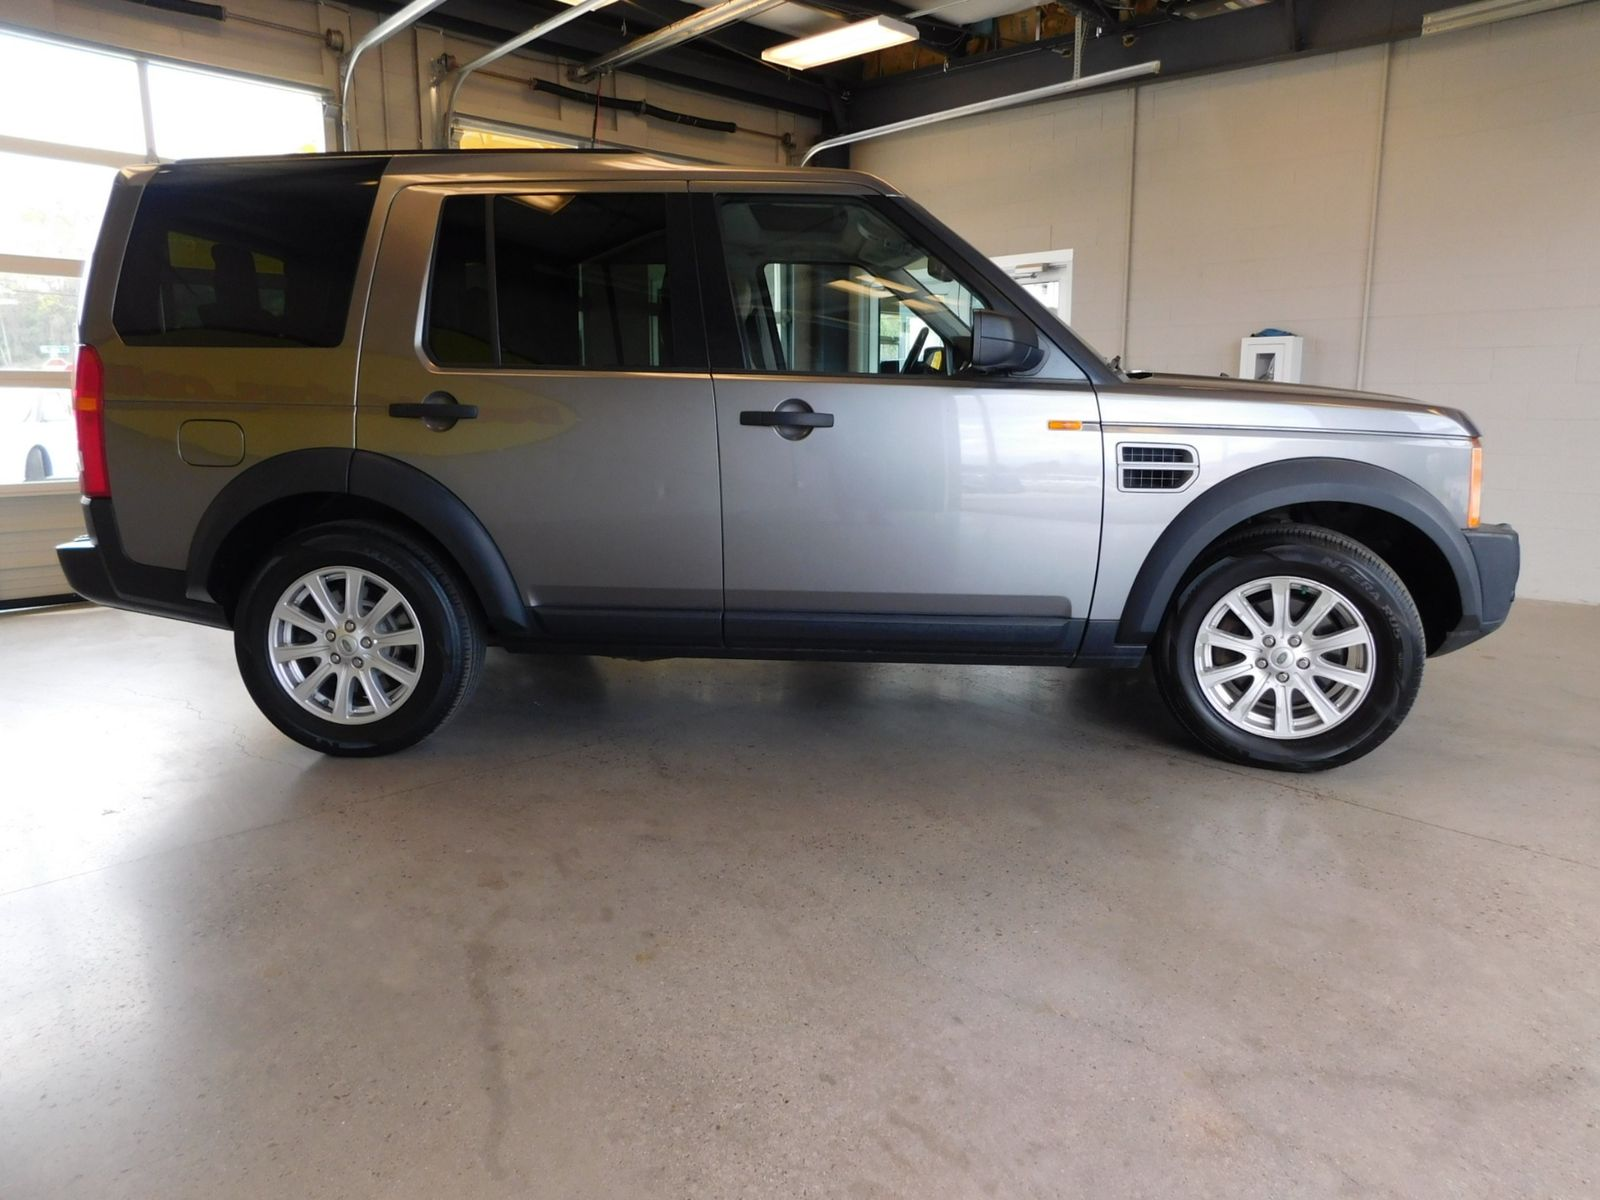 landrover road discovery land rover tires off wallpaper